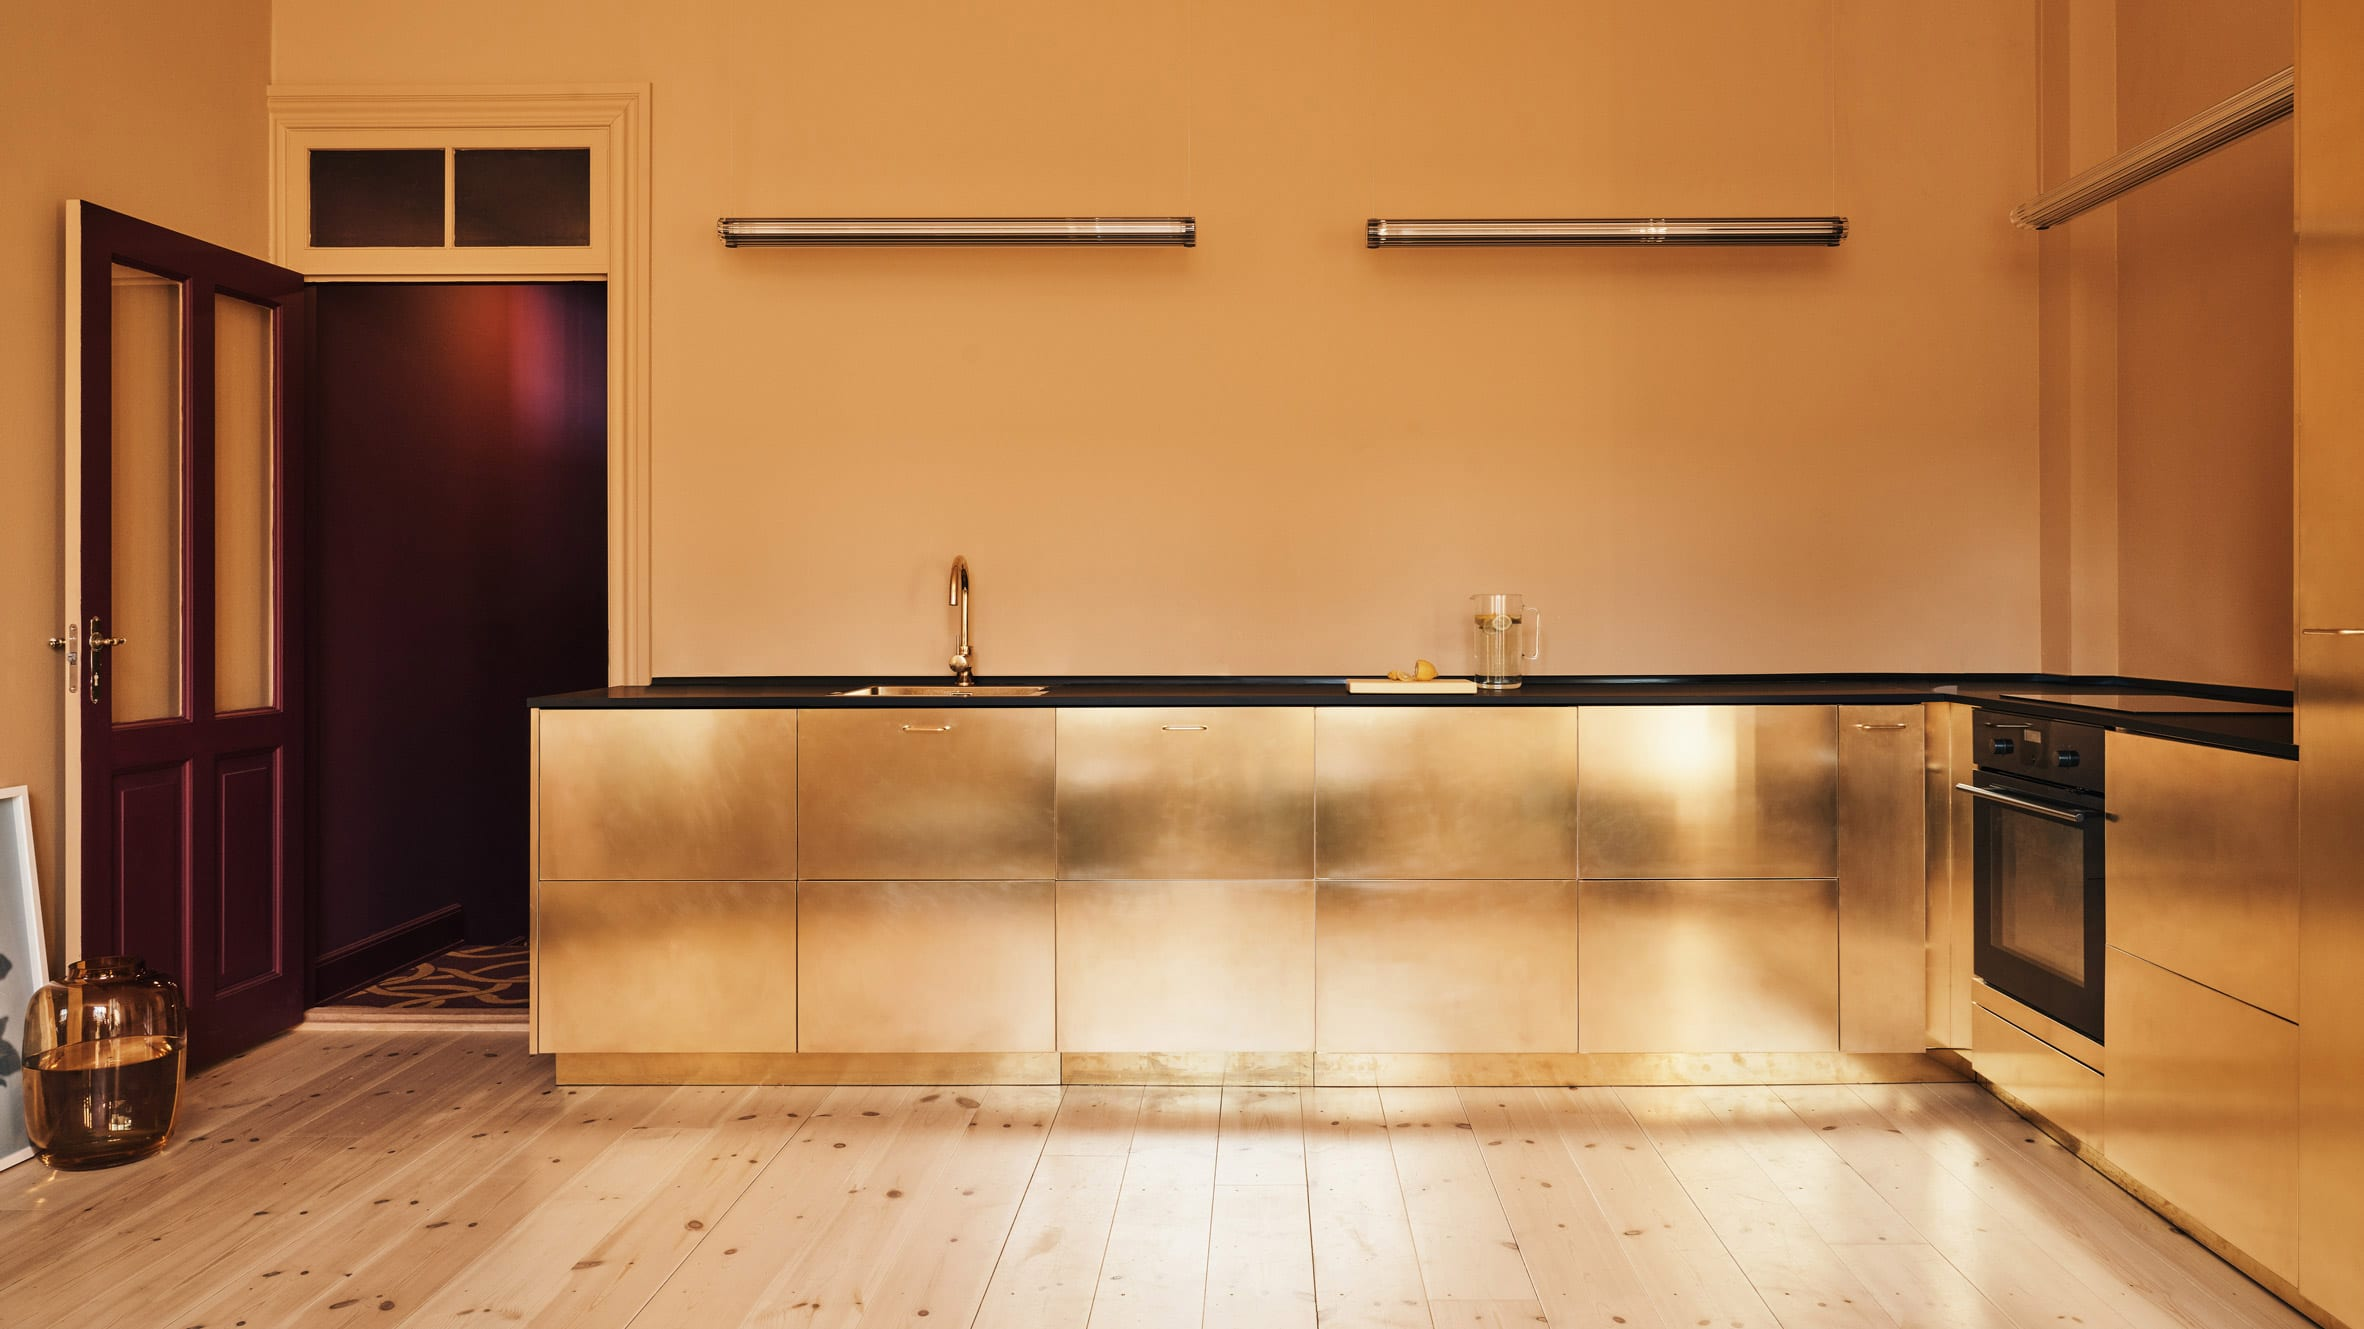 Ikea customised kitchen by Reform